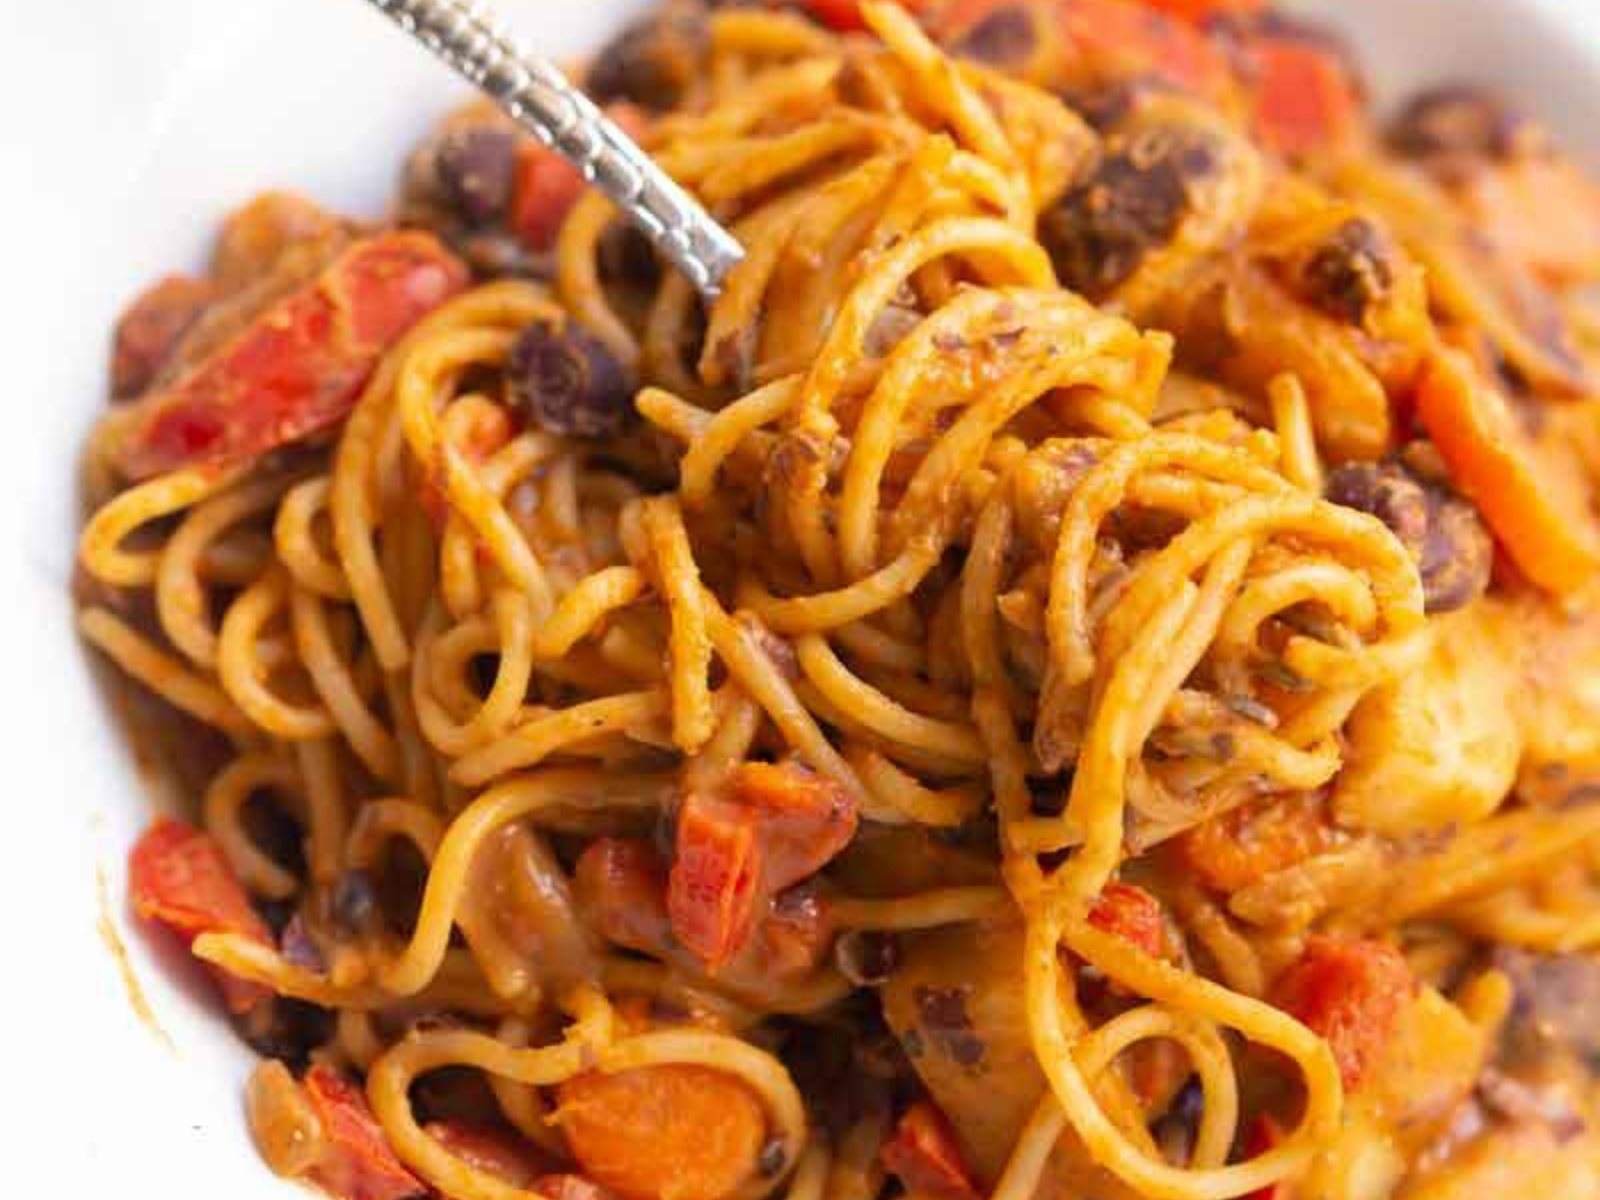 Spicy Spaghetti with Beans and Vegetables